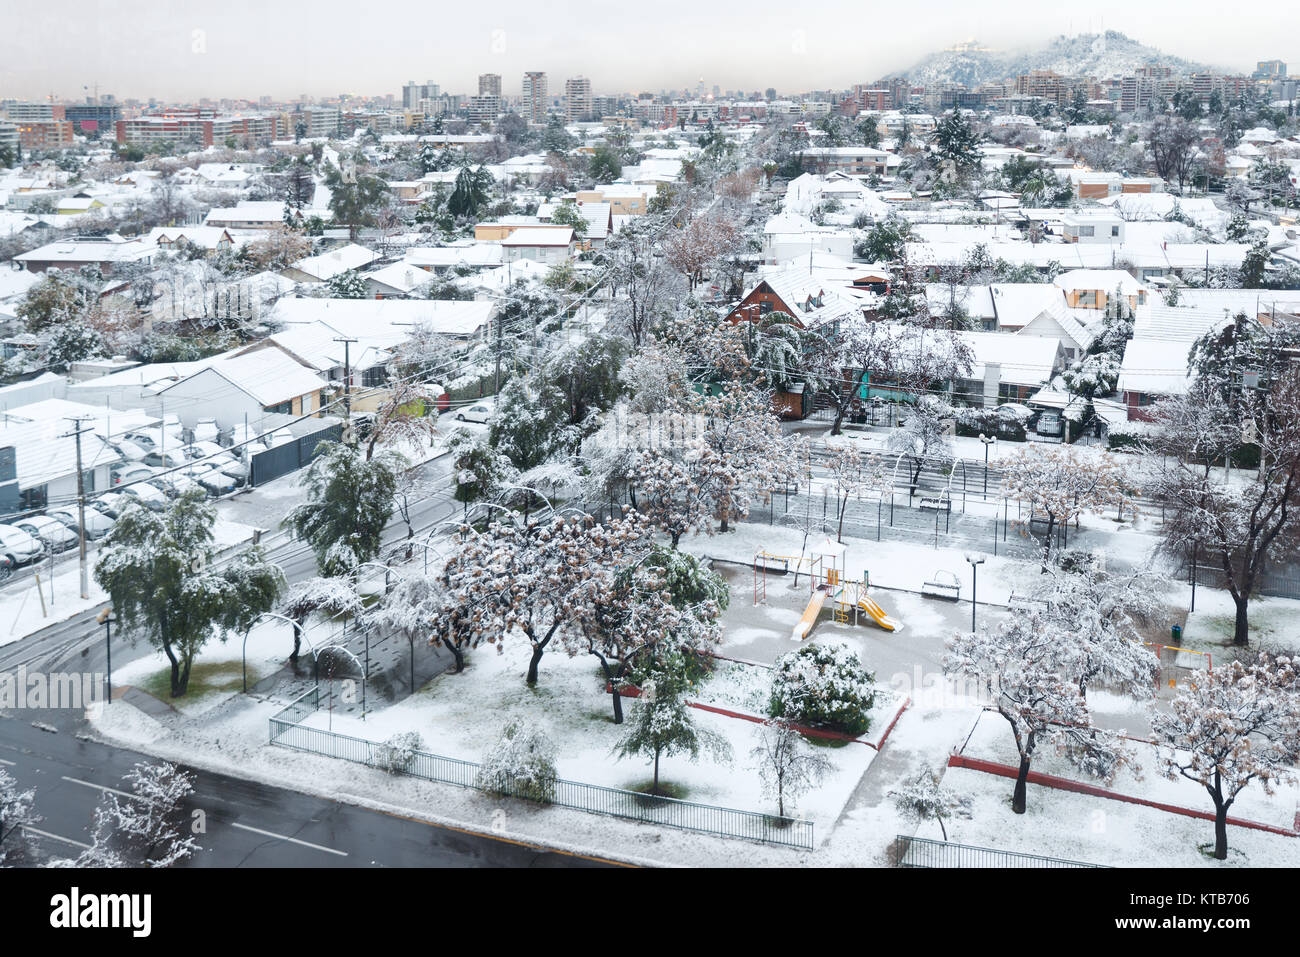 Santiago, Region Metropolitana, Chile - July 15, 2017: The city was completely covered by snow, an unusual phenomenon - Stock Image